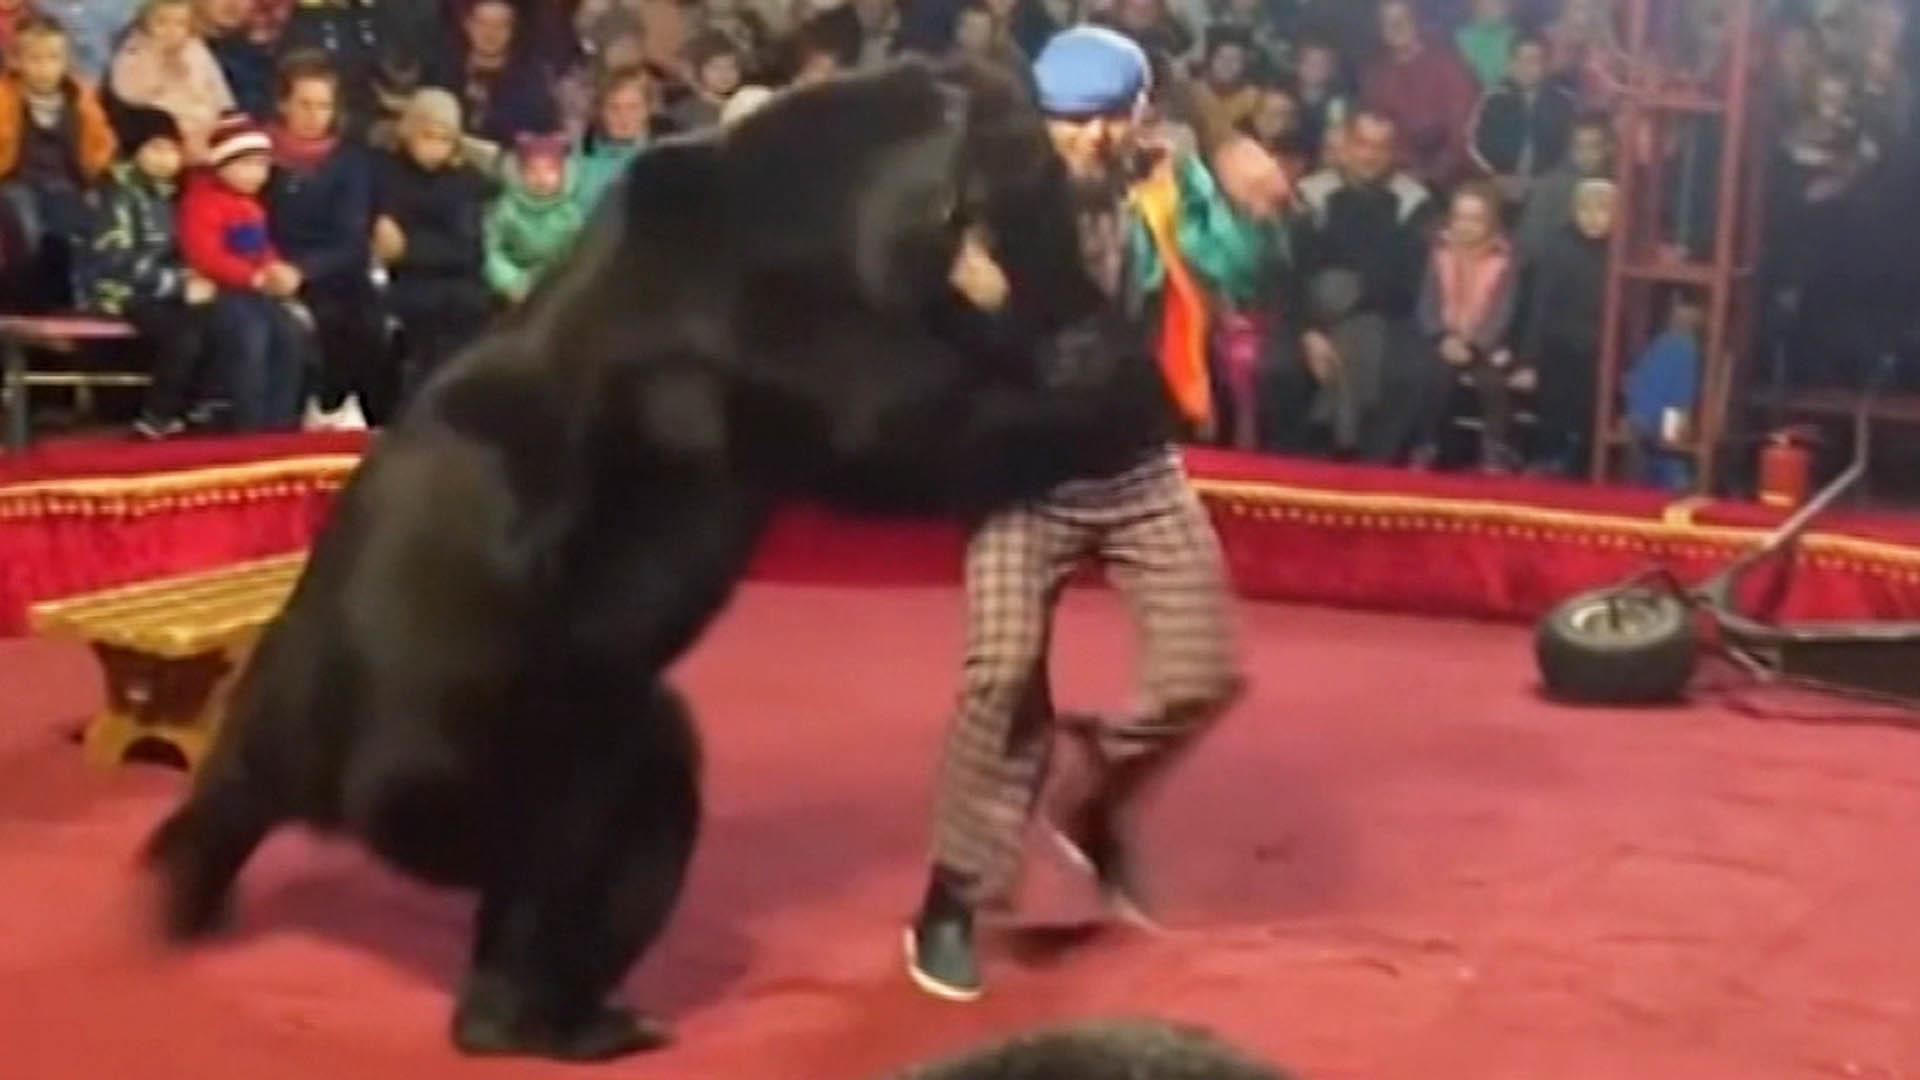 'A panic started' after bear at Russian circus attacks trainer